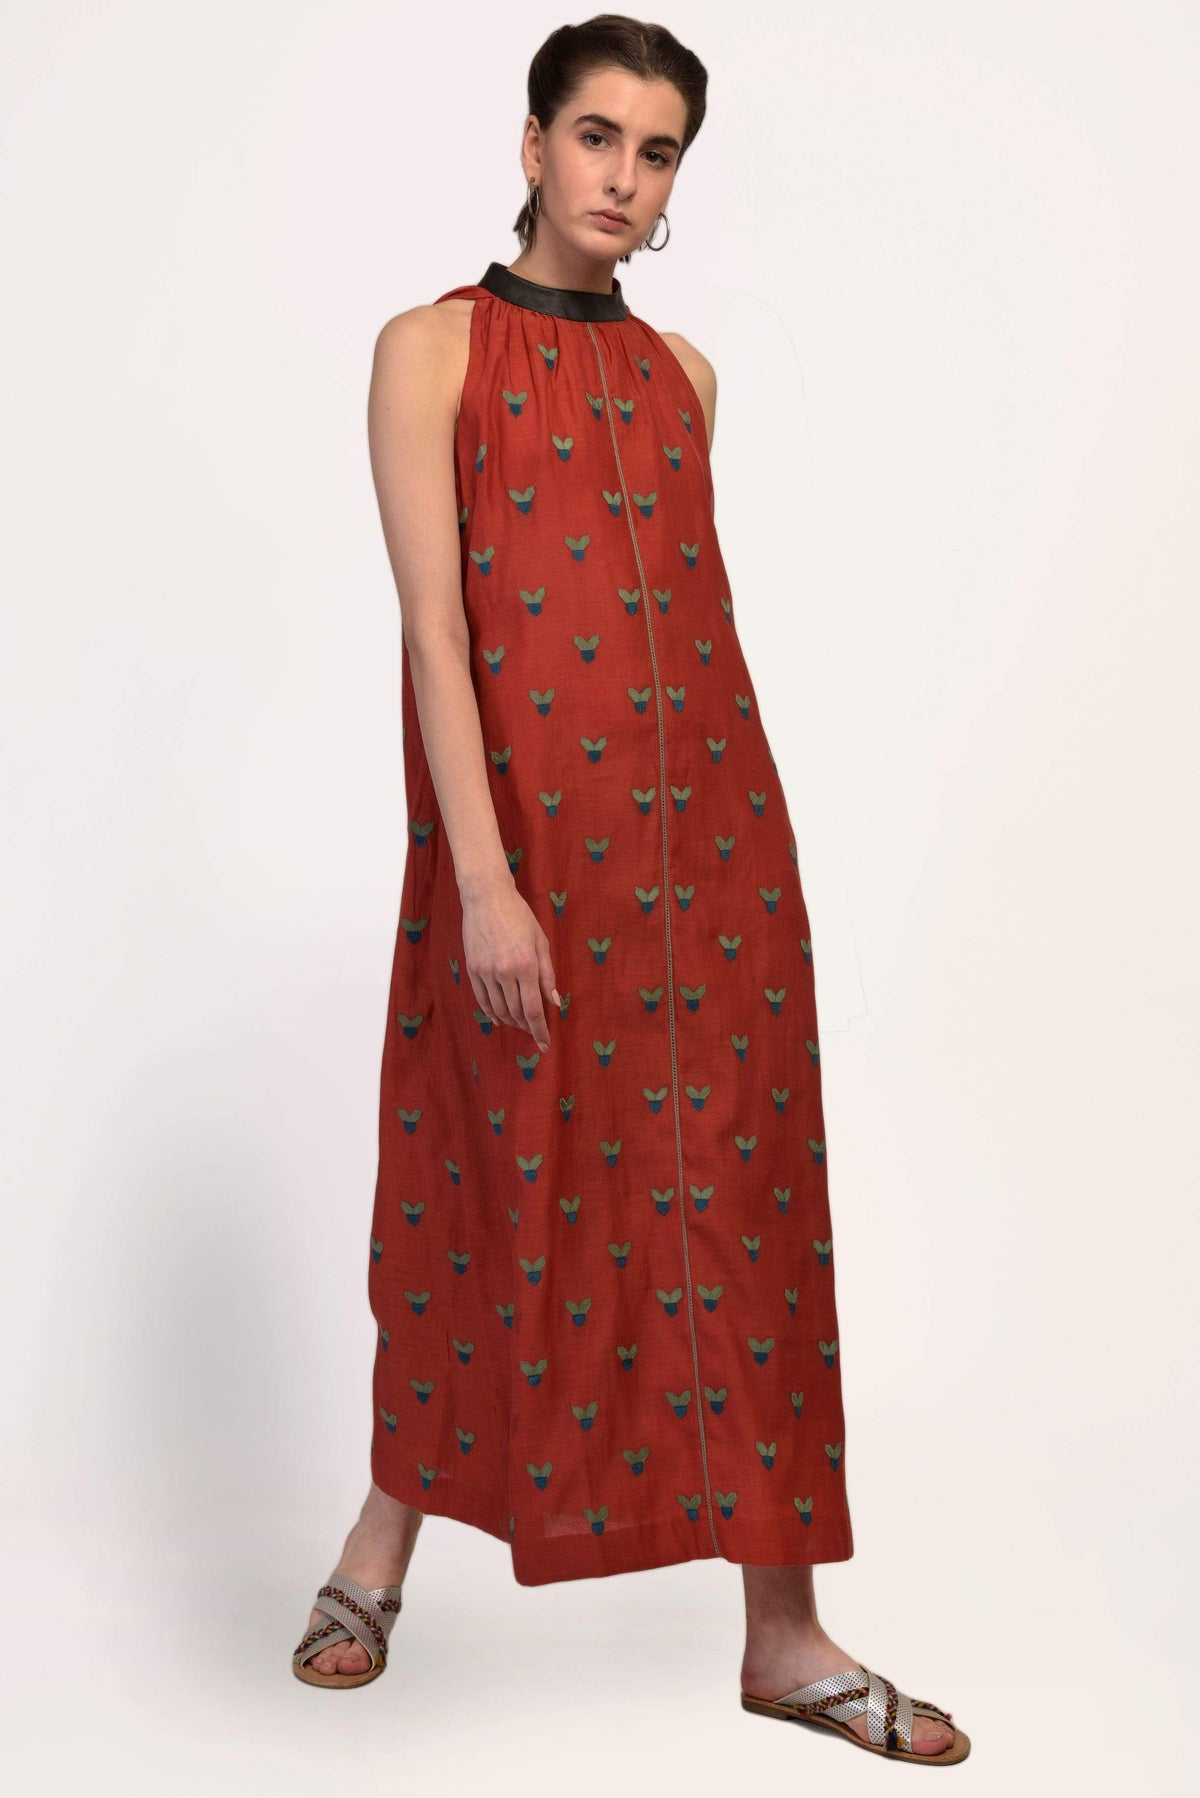 Ikai by Ragini Ahuja Dresses Halter neck dress with leather